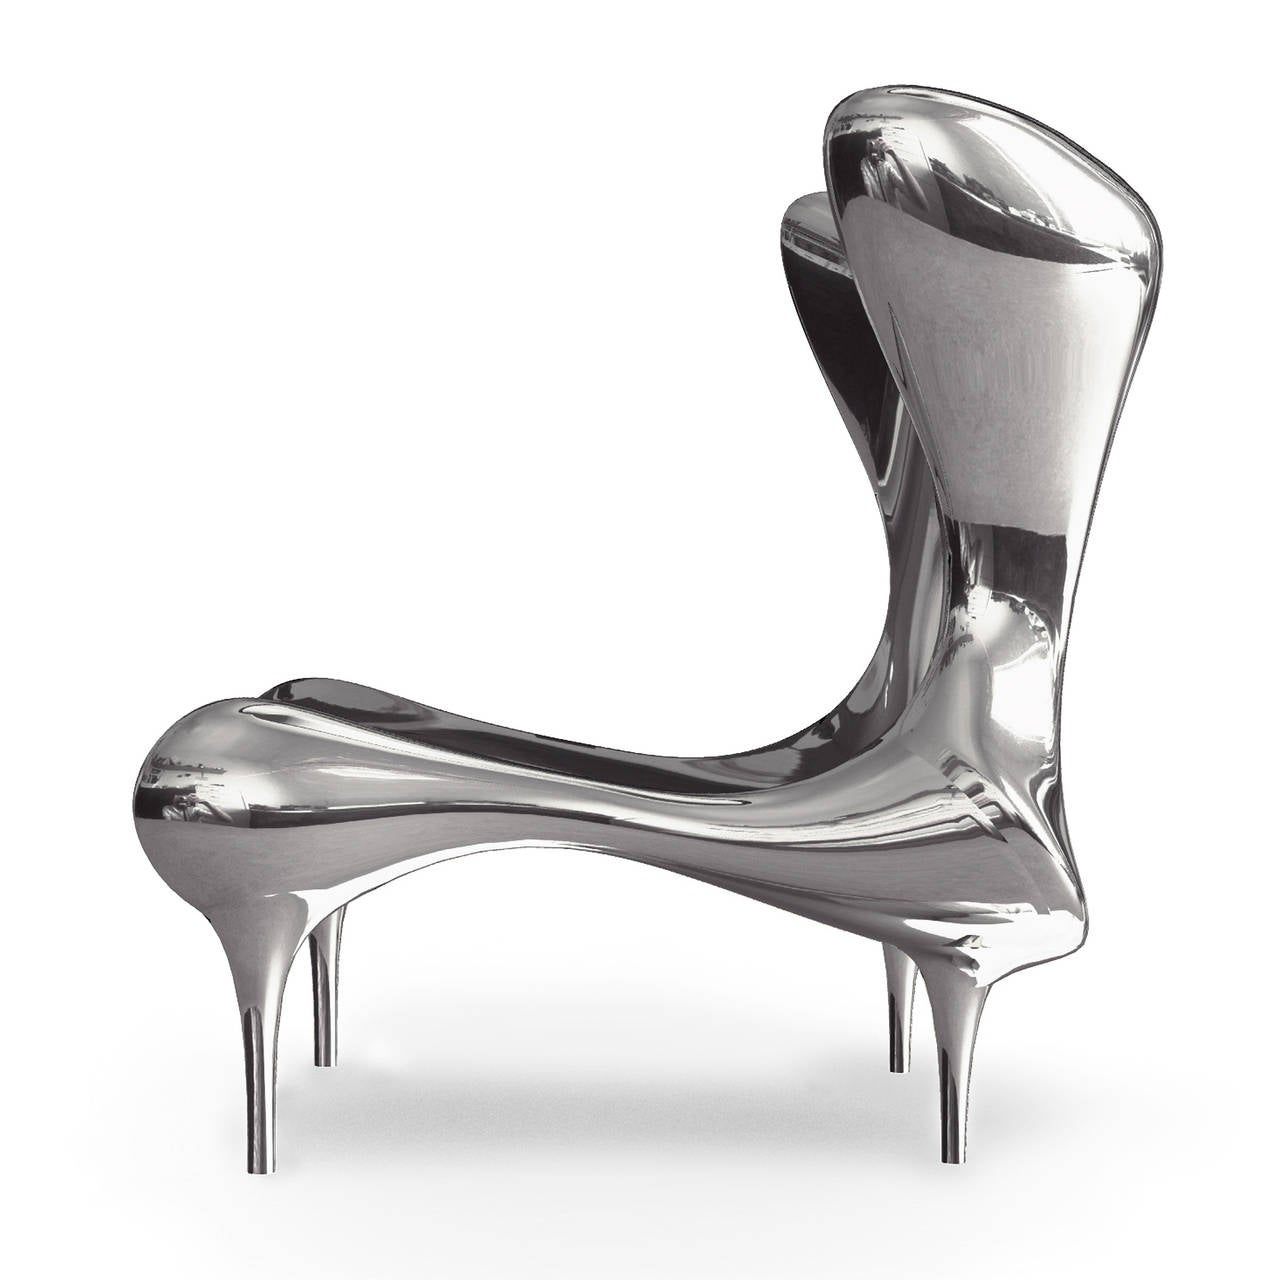 Riemann Chair In Mirror Polished Stainless Steel For Sale At 1stdibs